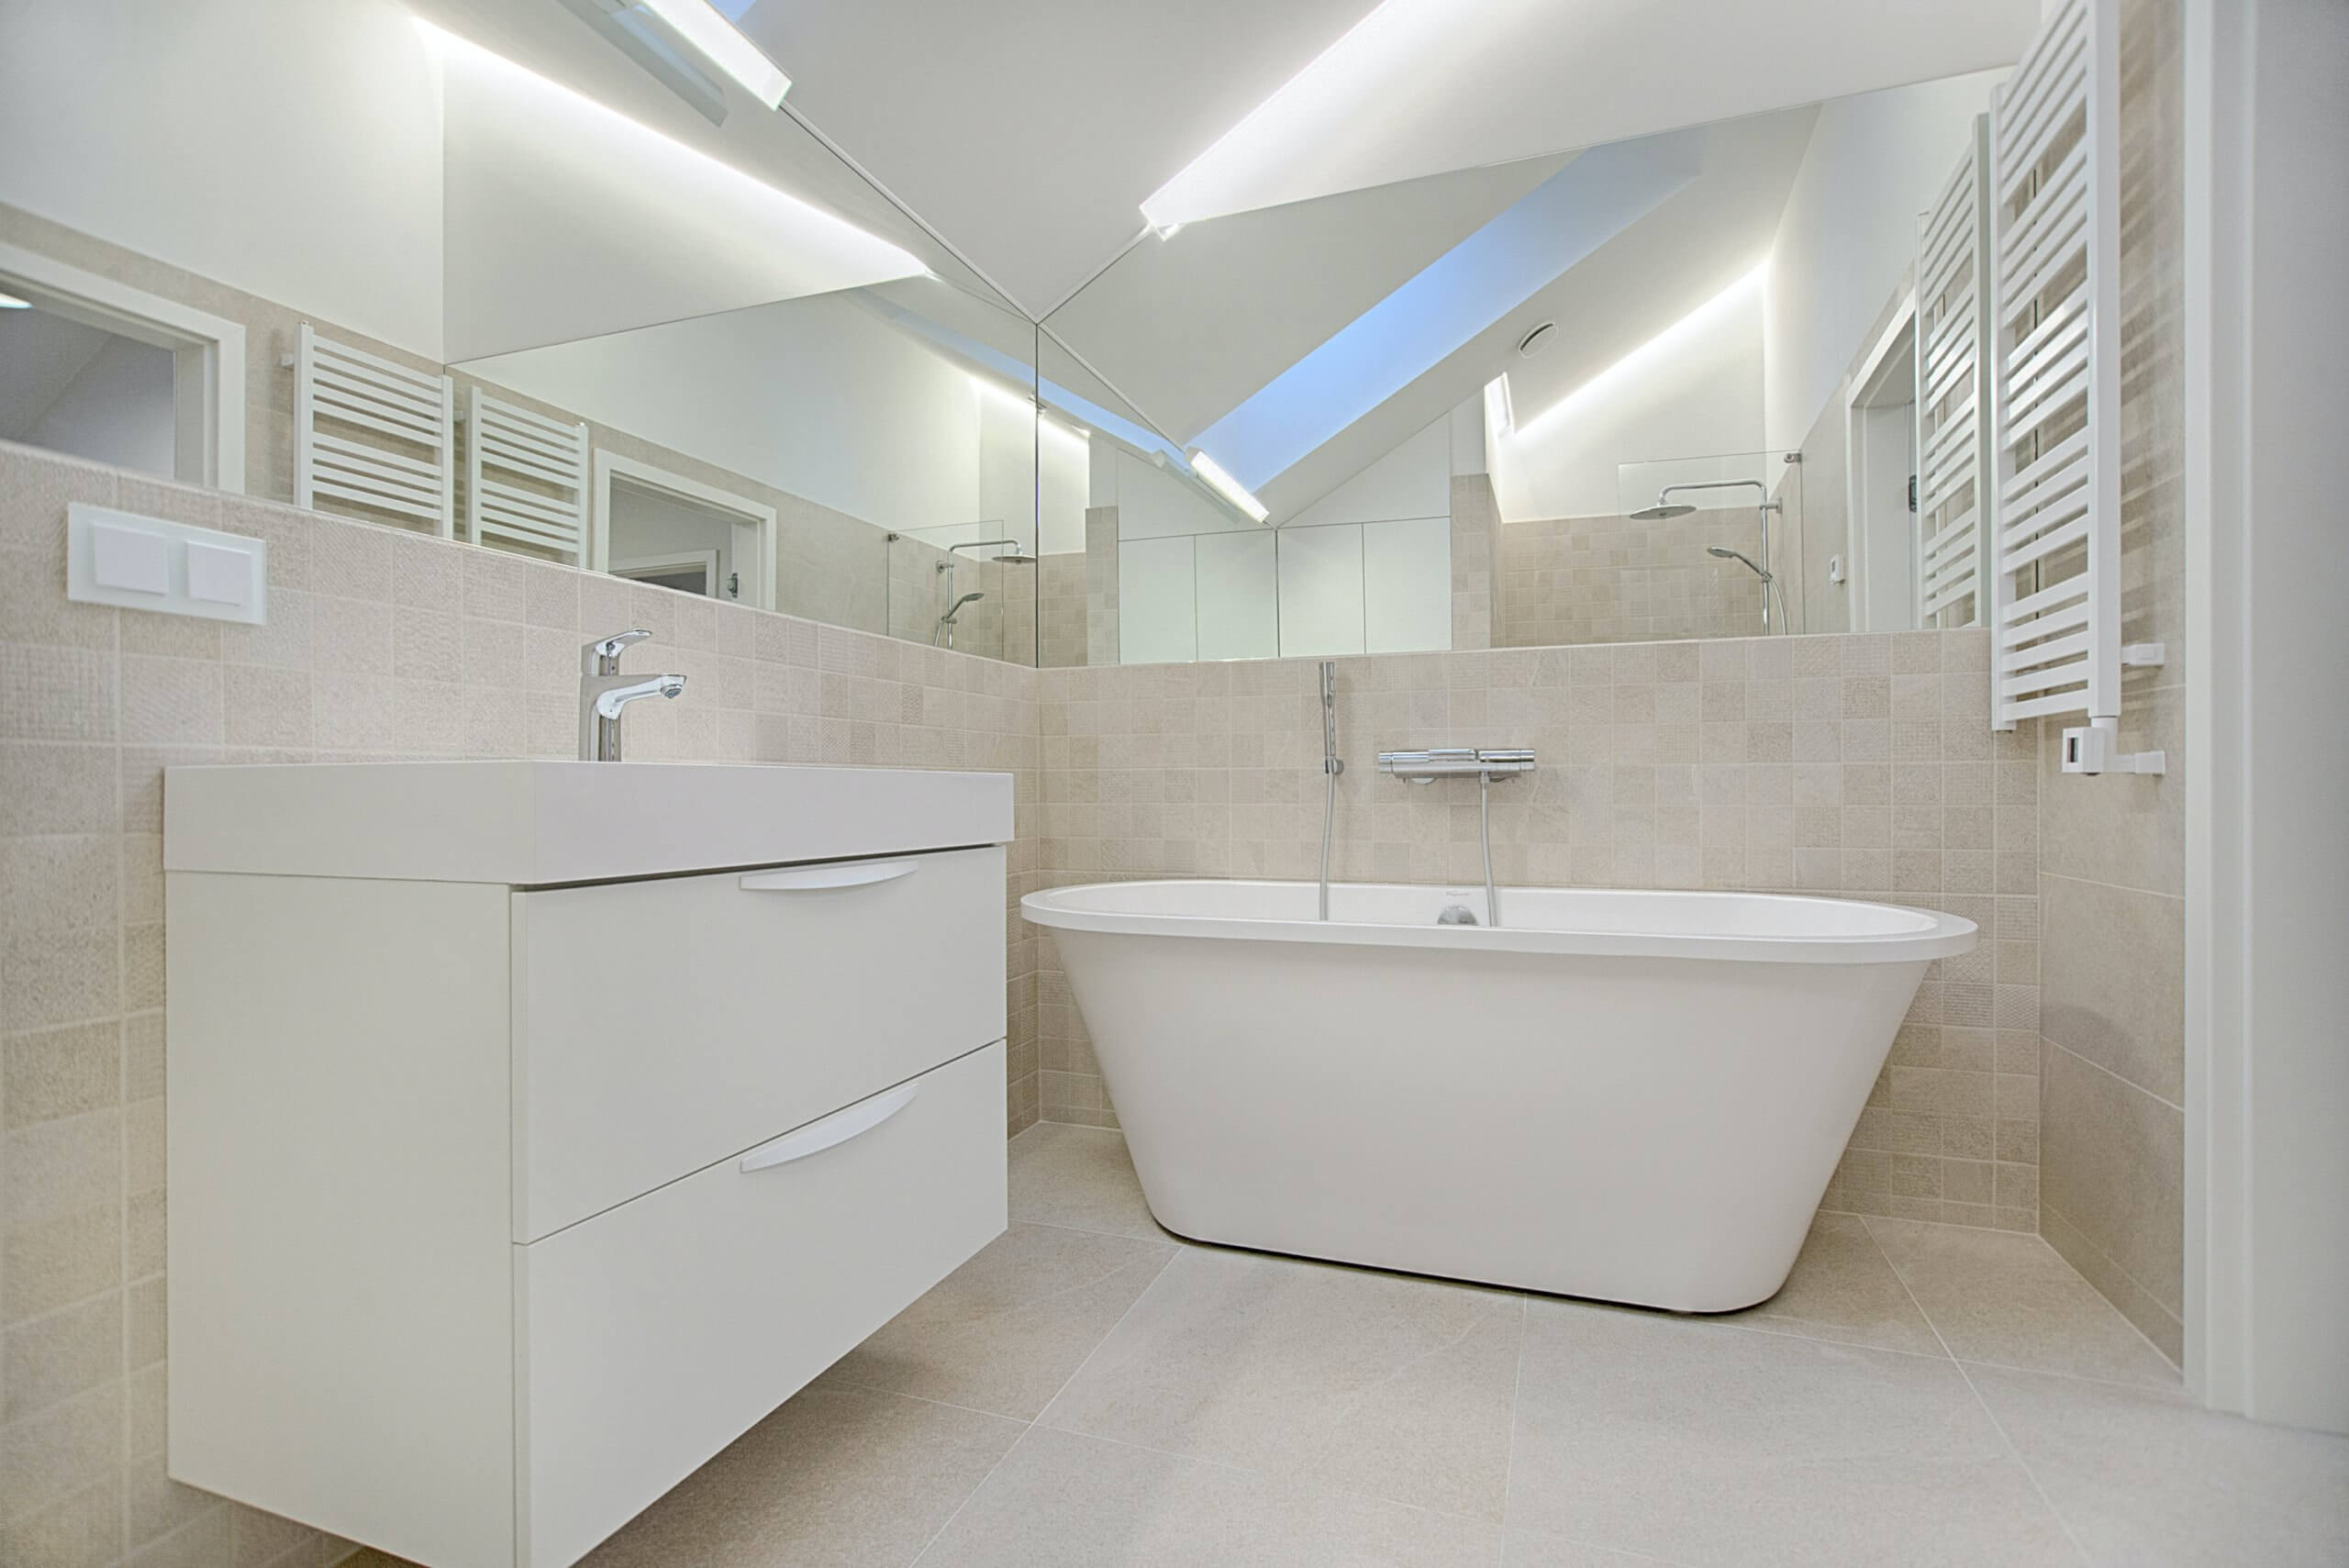 5 Reasons Why Bathroom Renovations Are Worth the Cost